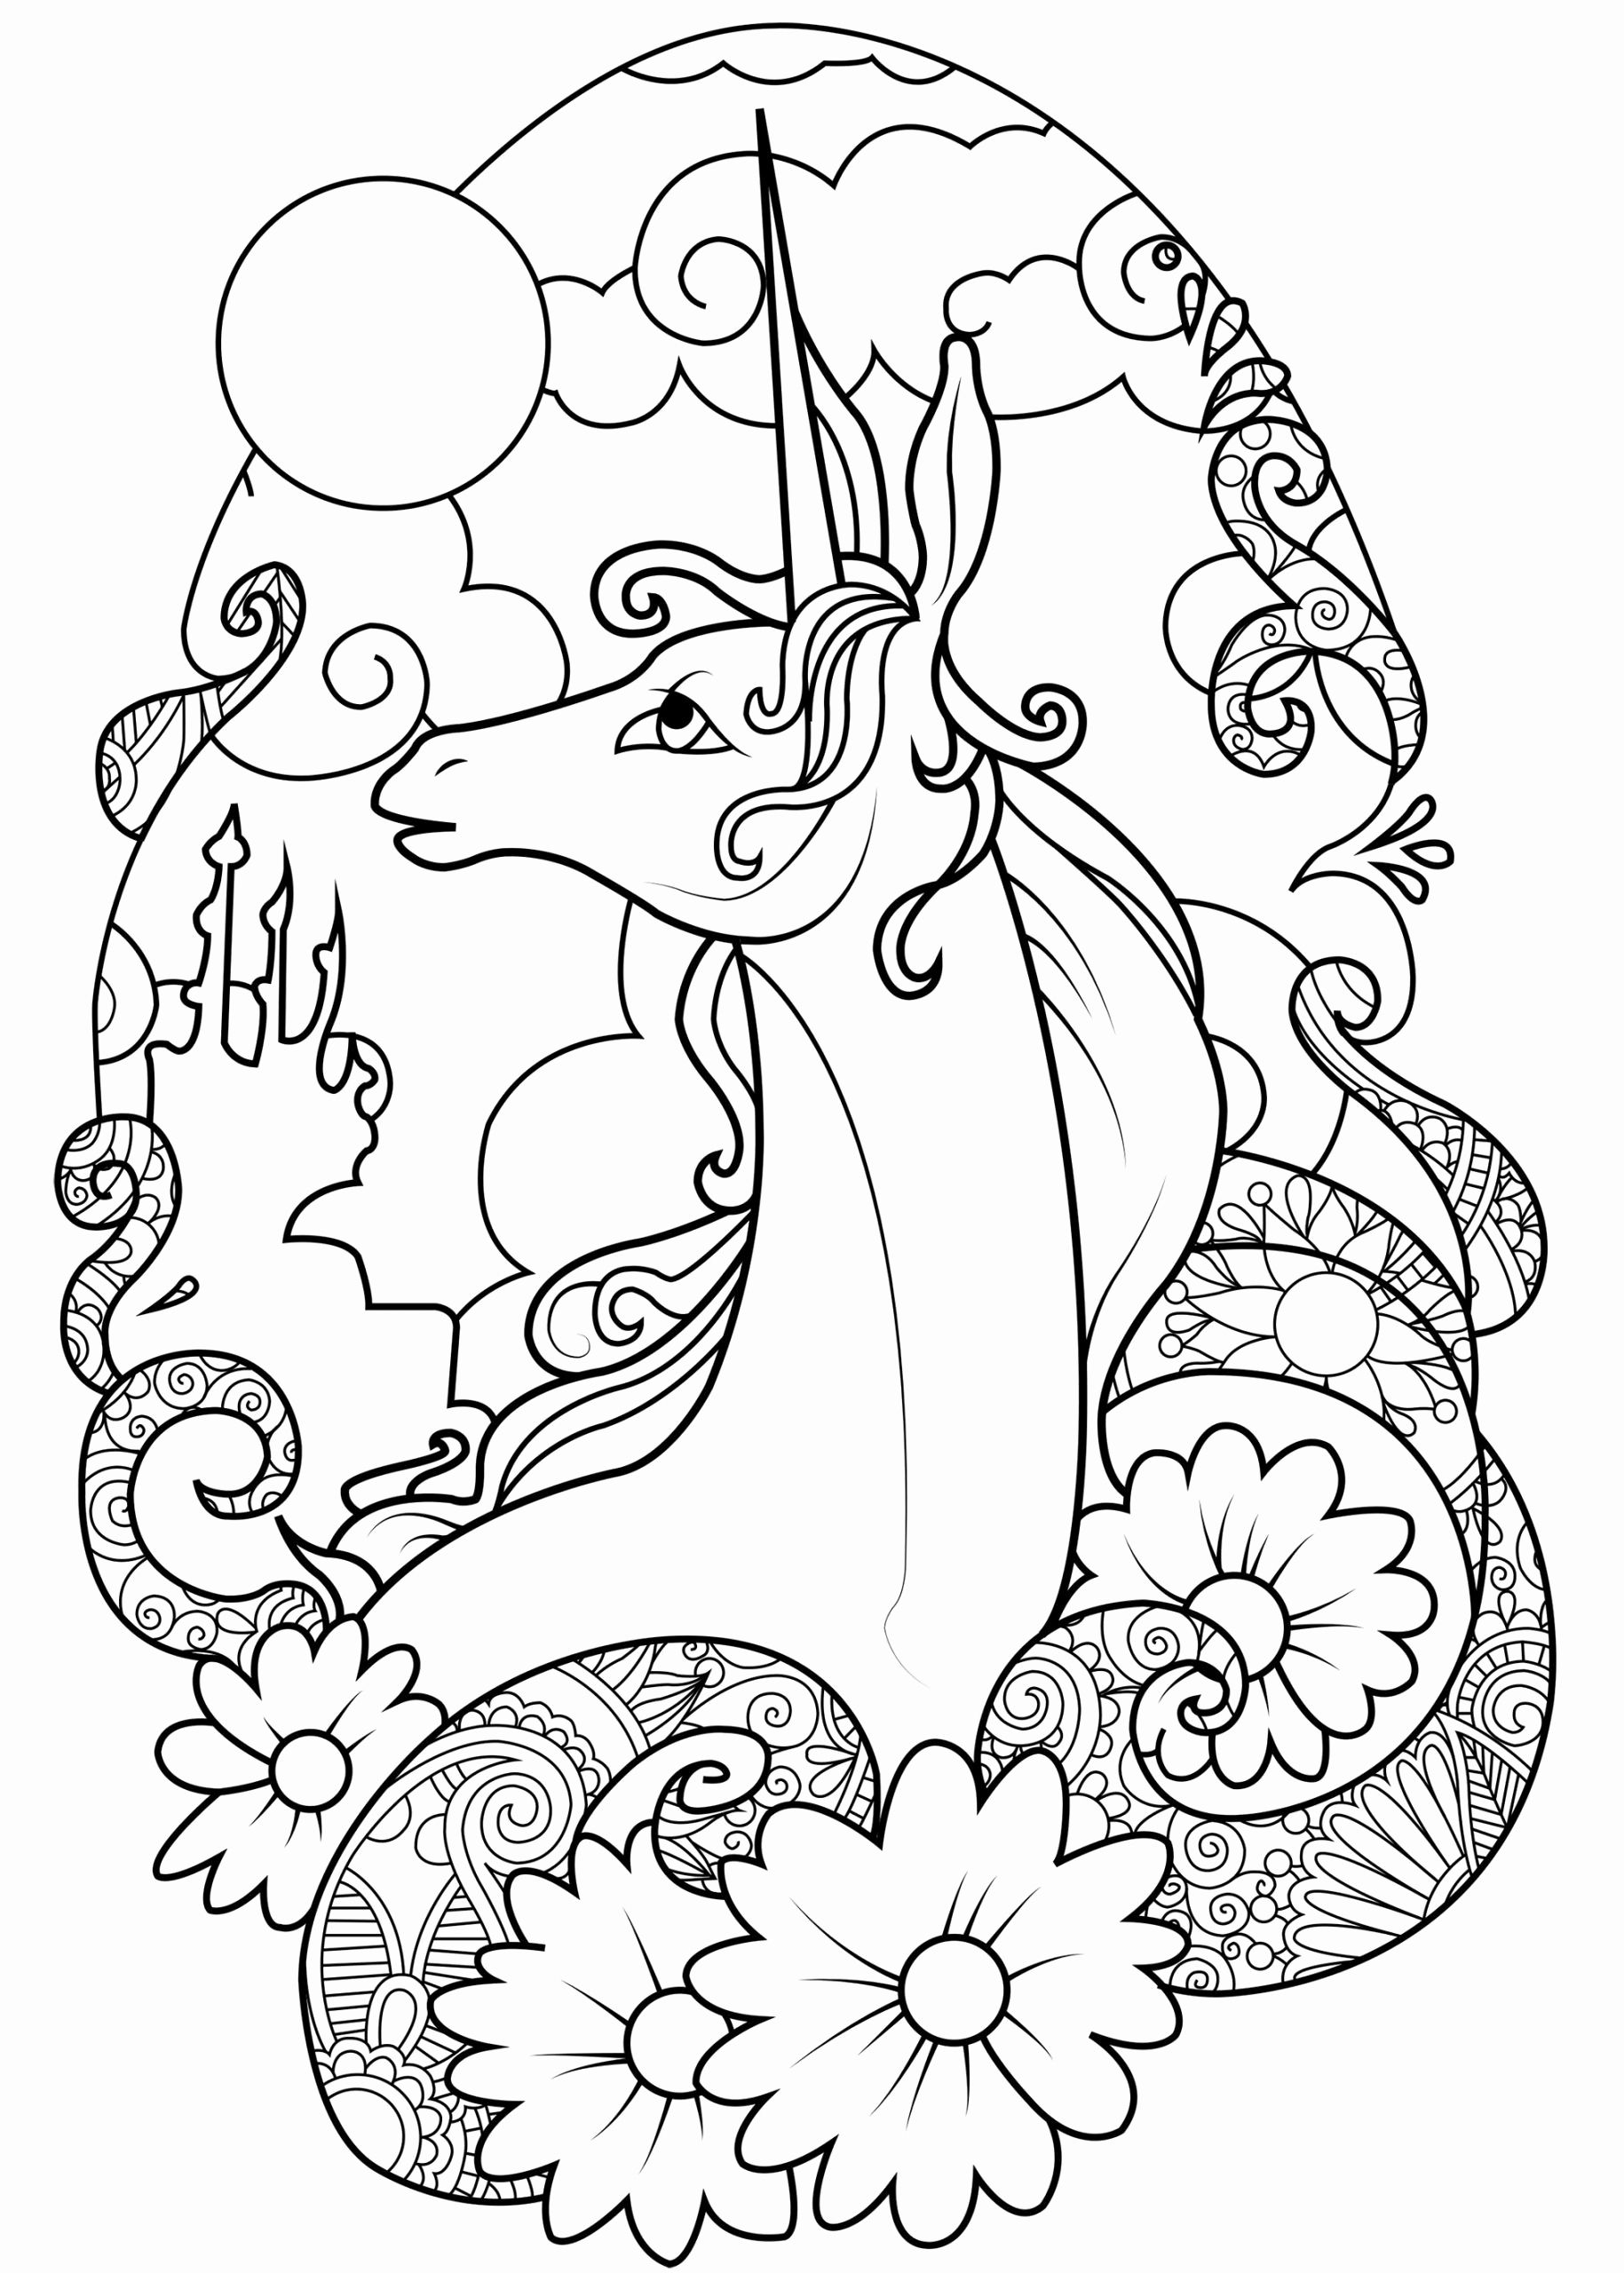 Detailed Coloring Pages Fo Kids In 2020 Unicorn Coloring Pages Detailed Coloring Pages Dragon Coloring Page